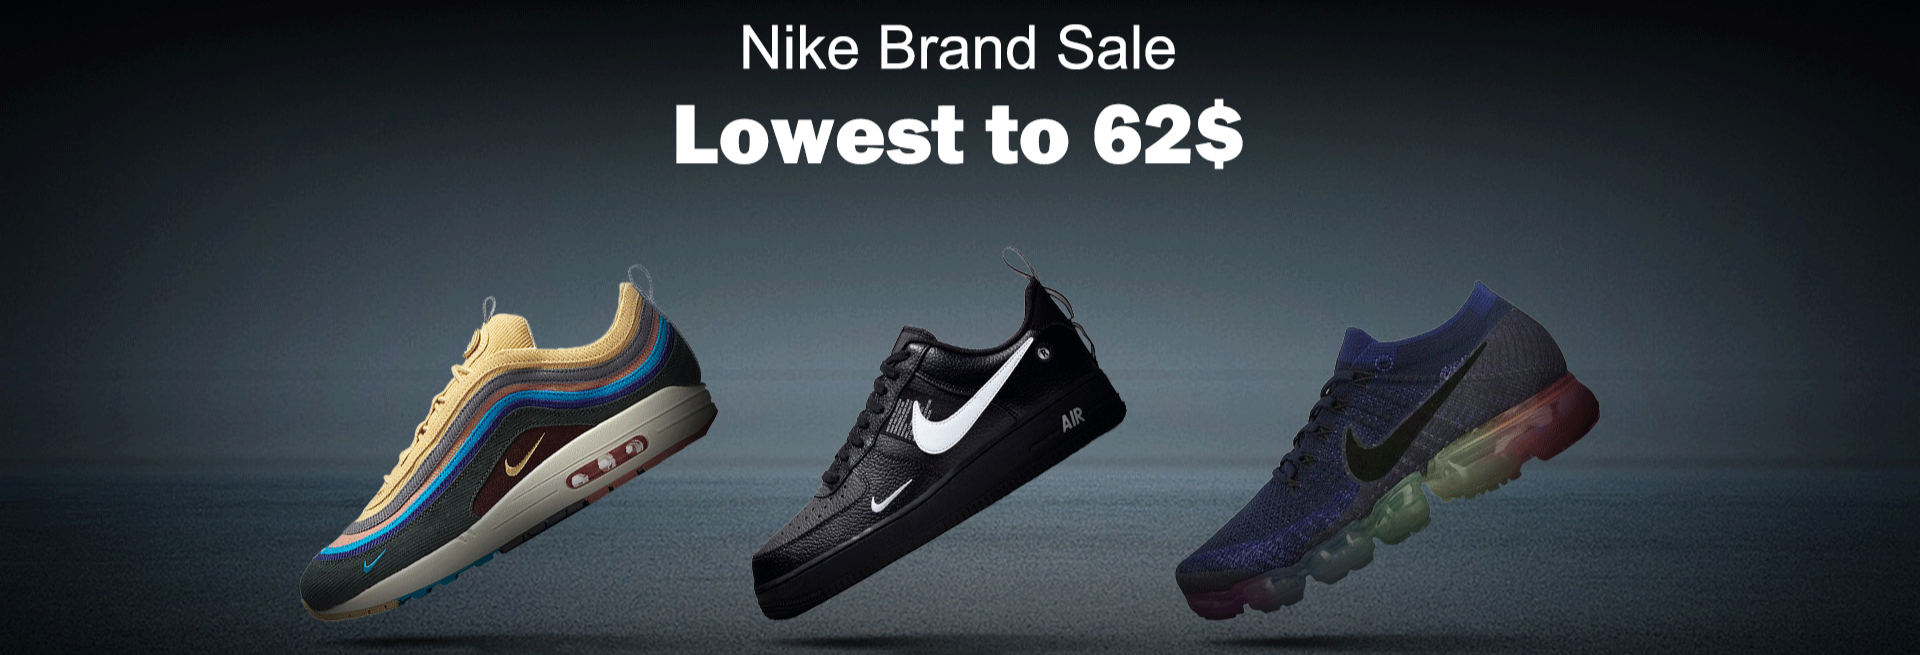 b7266c78d9458 Stadium Goods Store - Small Orders Online Store, Hot Selling and ...